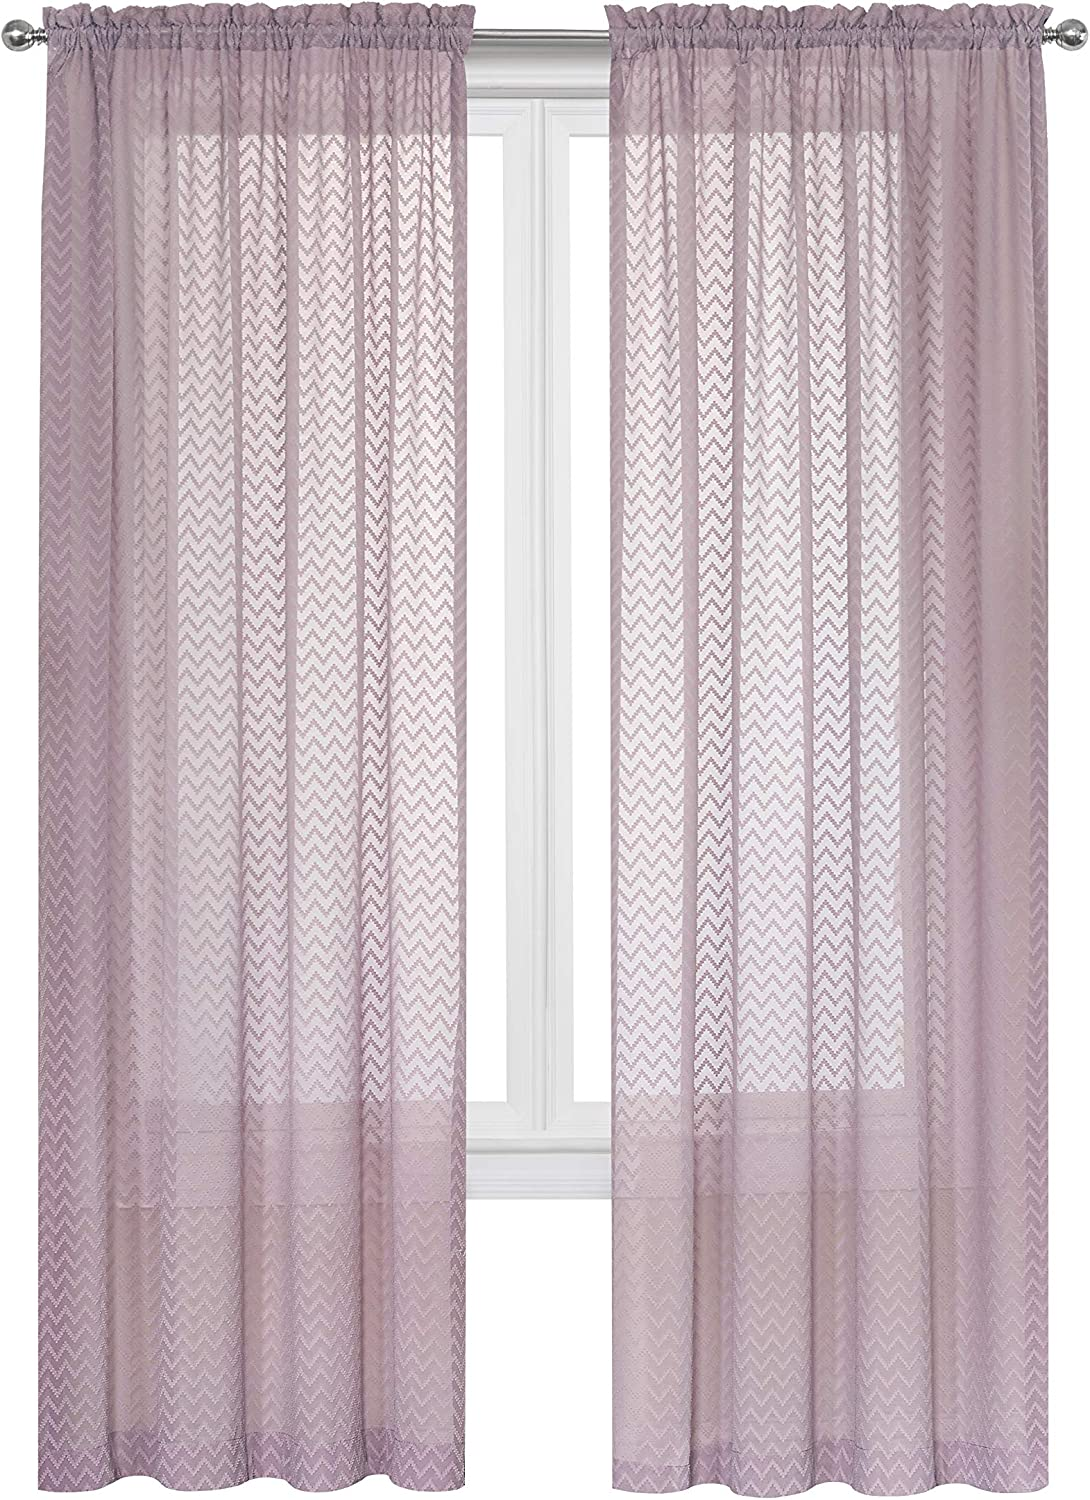 Regal Home Collections Chevron Top Selling Curtain Panel Pair, Soft Plum Set, 2